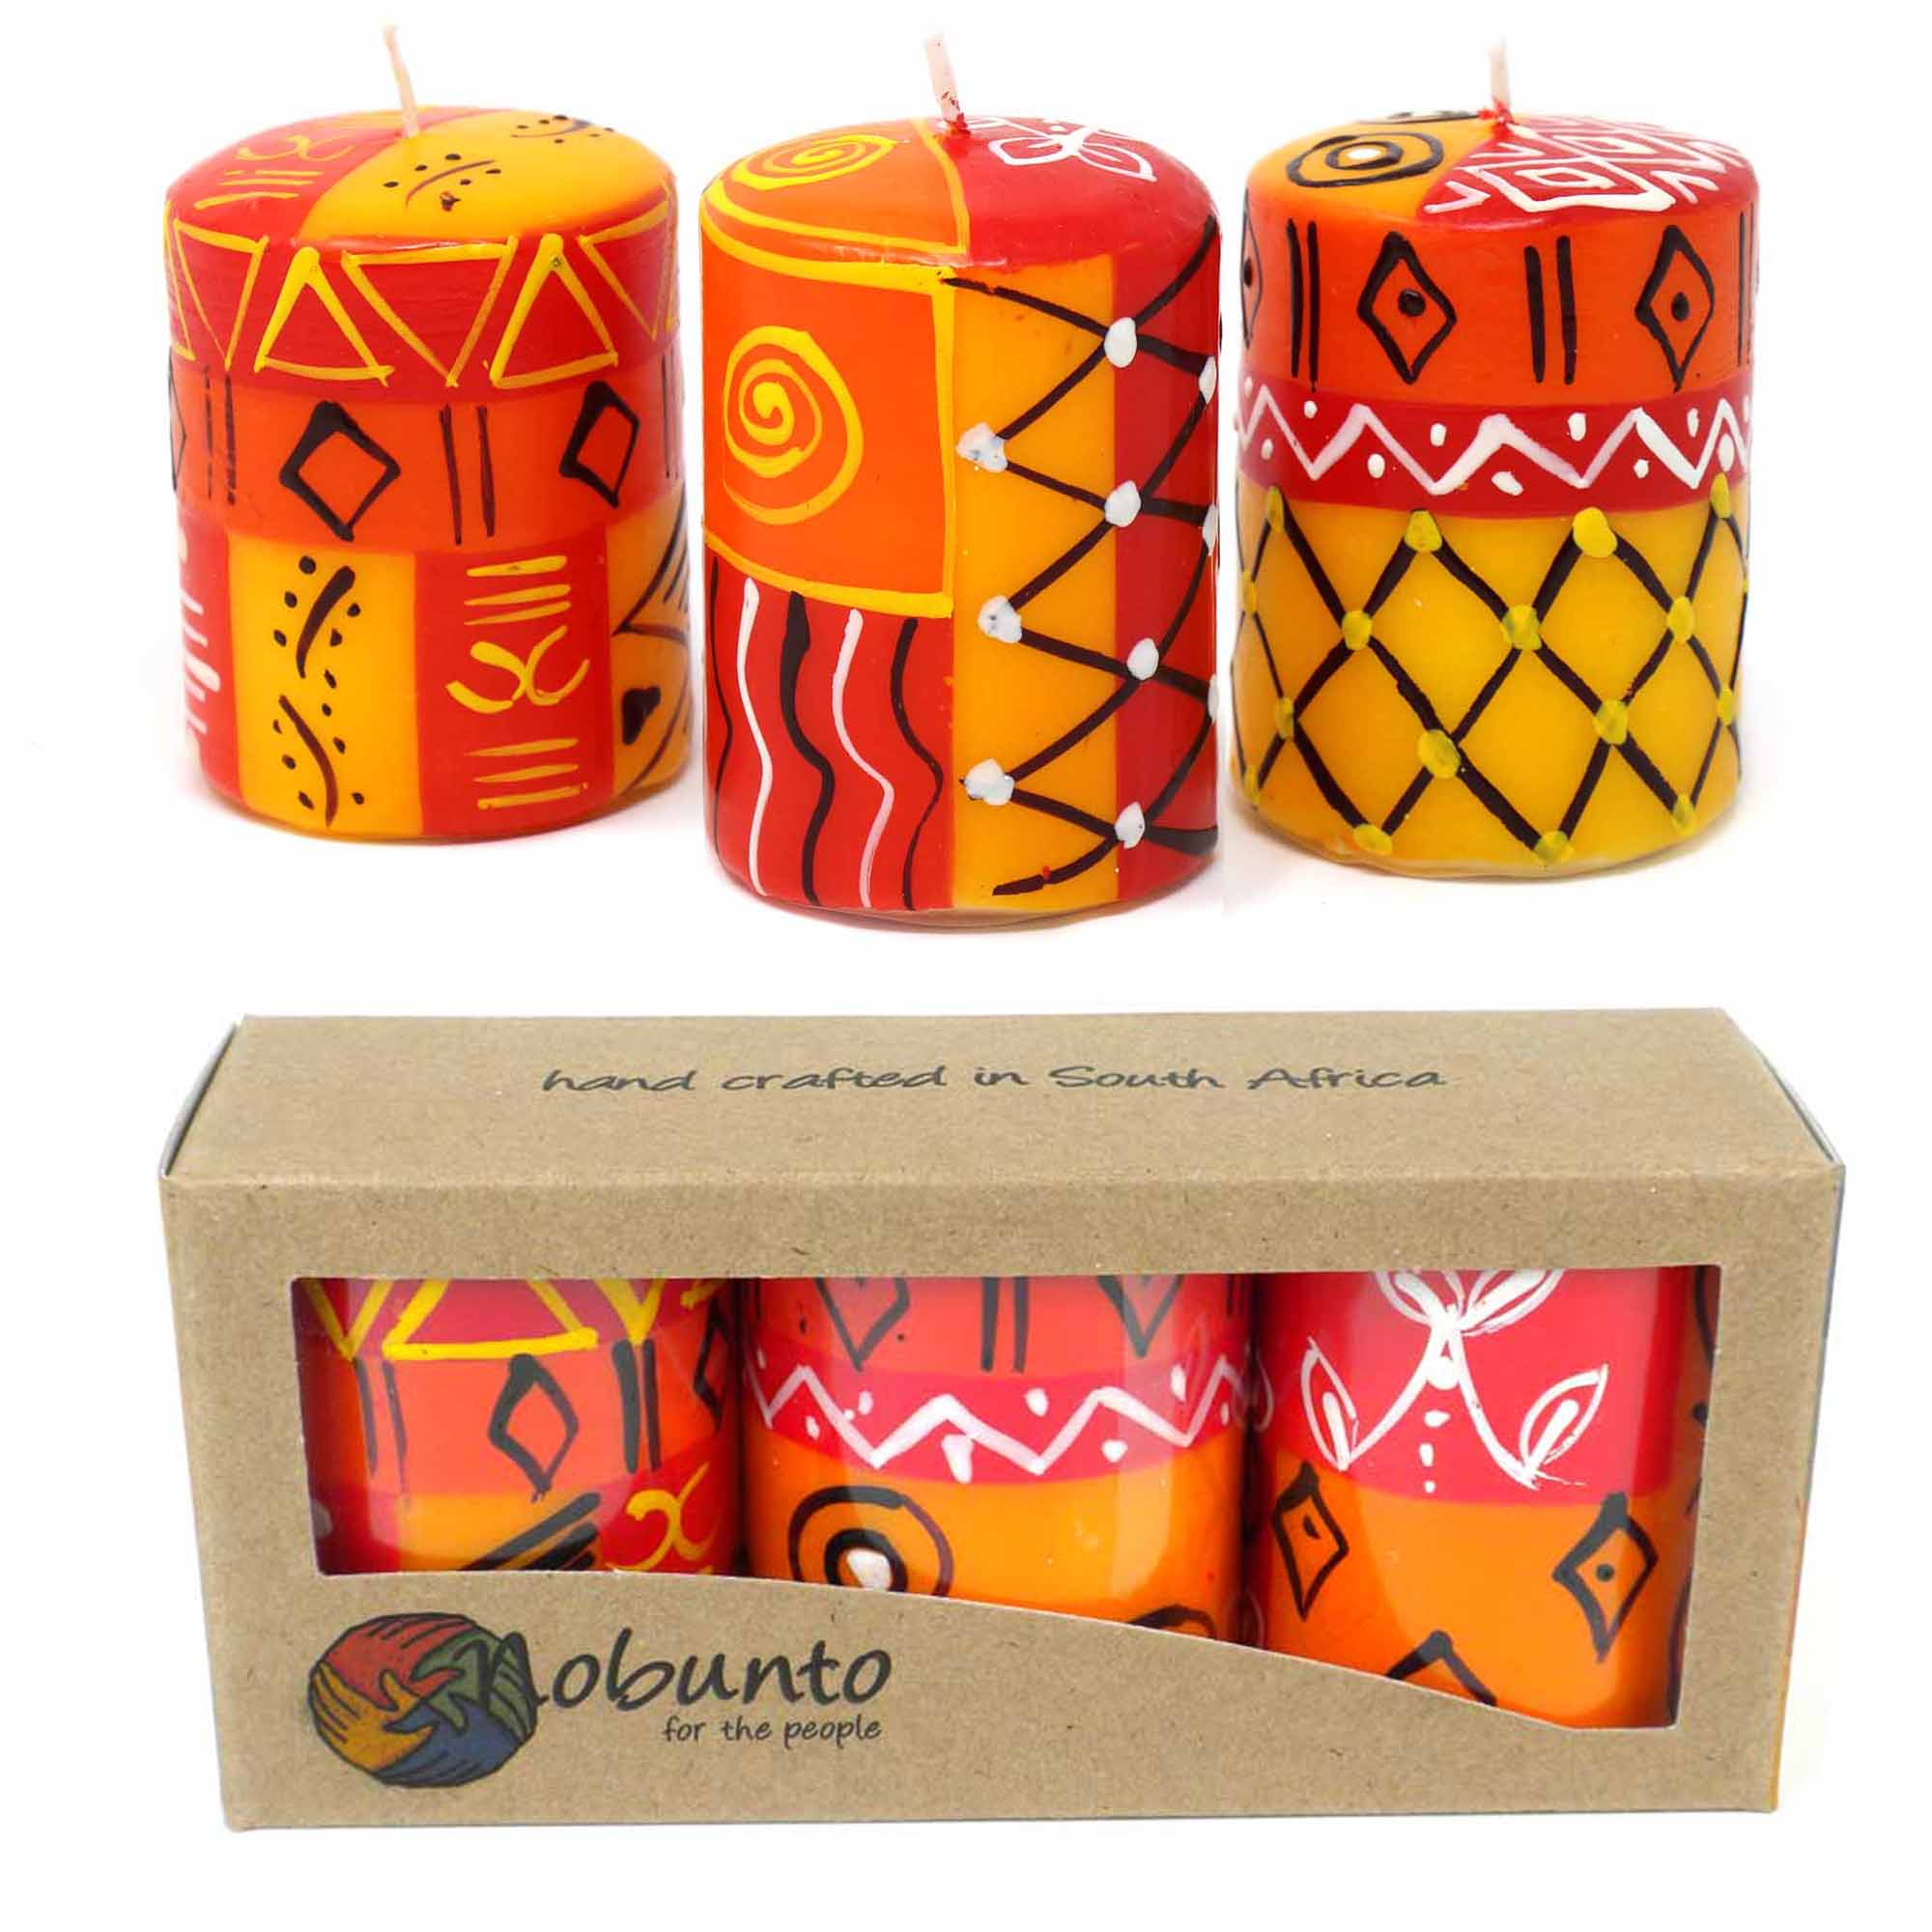 Unscented Hand-Painted Votive Candles, Boxed Set of 3 (Zahabu Design)